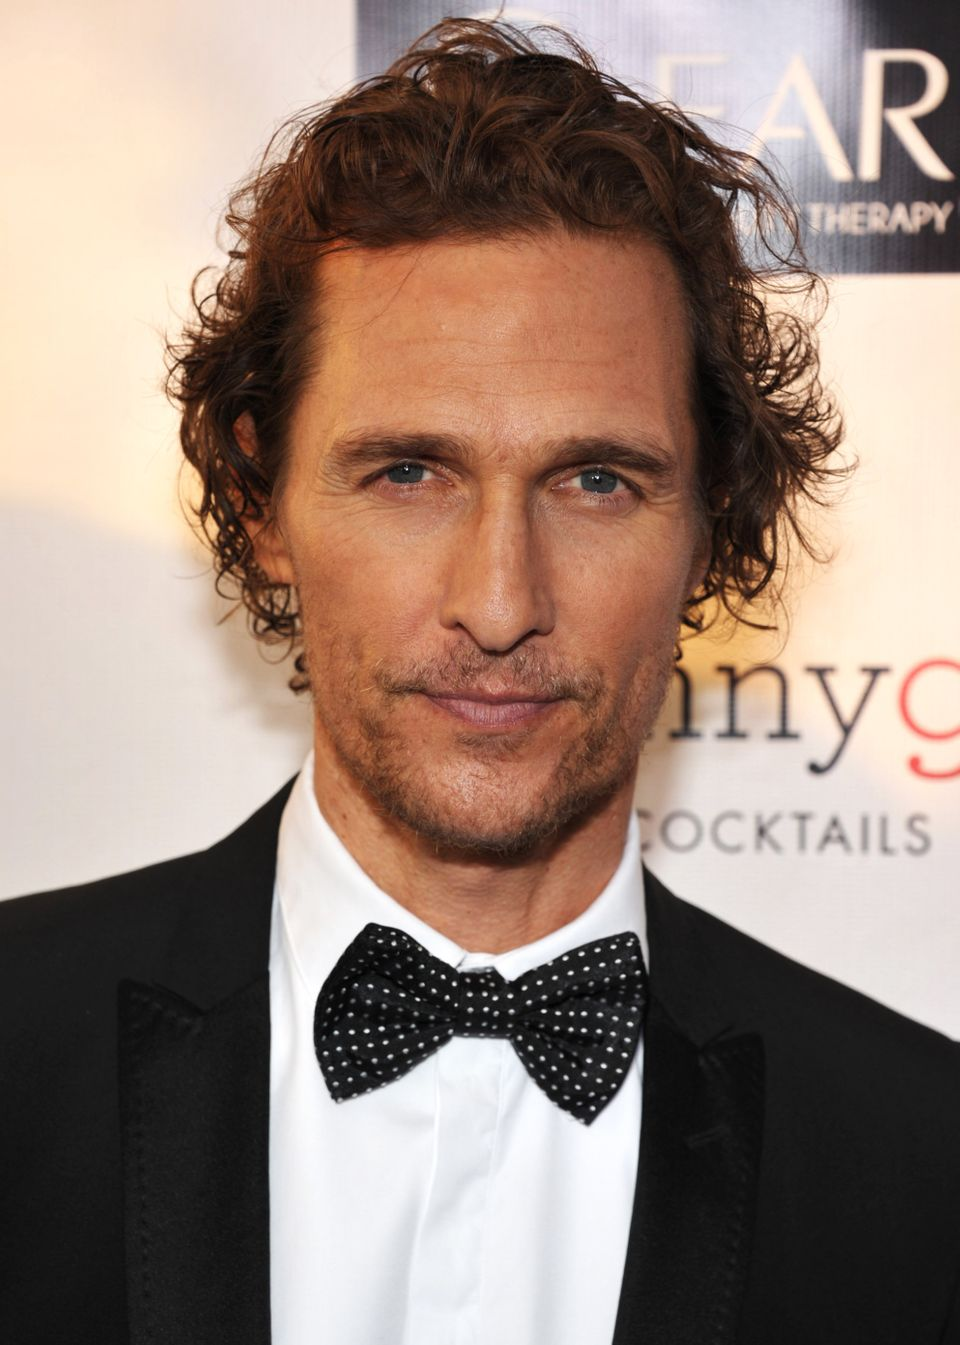 McConaughey has been on a career renaissance of late (the McConaissance, as he told HuffPost Entertainment), and this is the